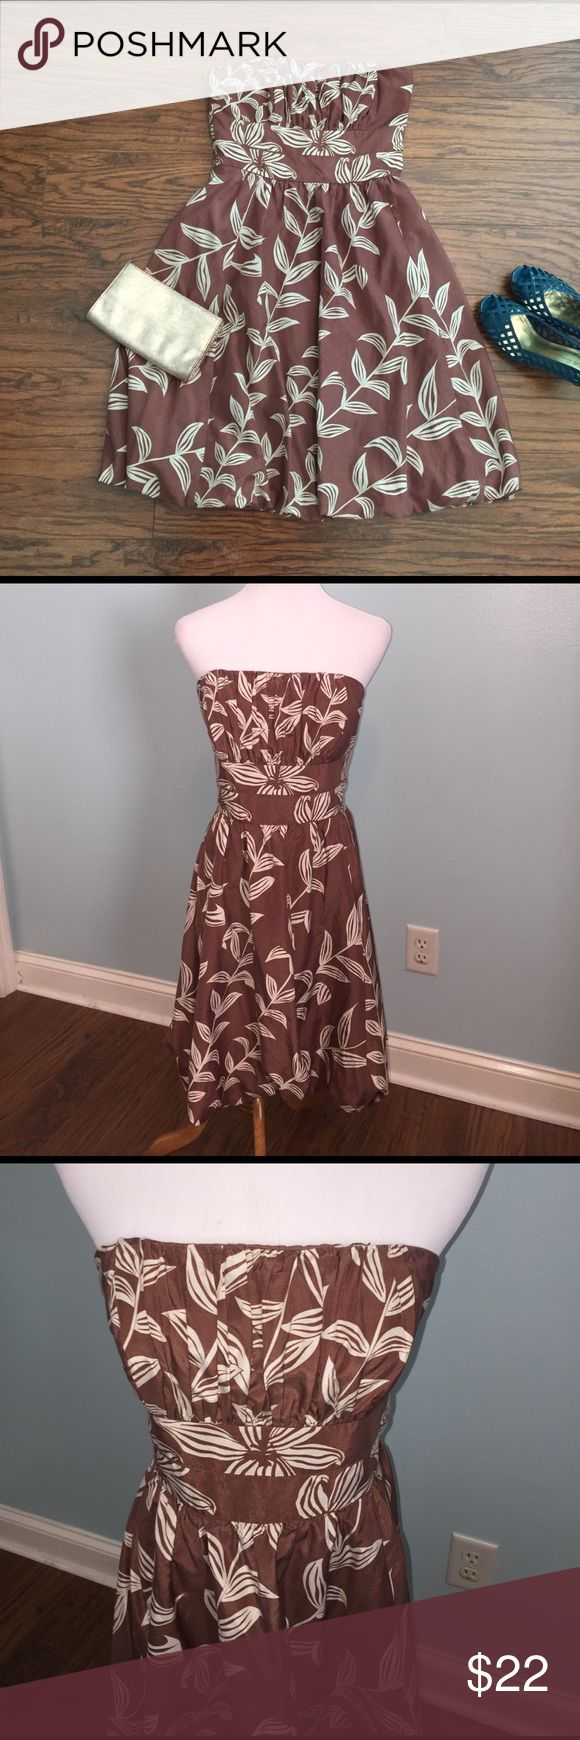 "Silk blend strapless dress Size 6. Beautiful brown silk blend sundress with cream leaf print. Bubble effect at bottom, lined top. Boning in top with unique ""bra"" hooks keep dress in place. Flattering shape. Cute dress for Spring! Silk/cotton blend. Dresses Strapless"